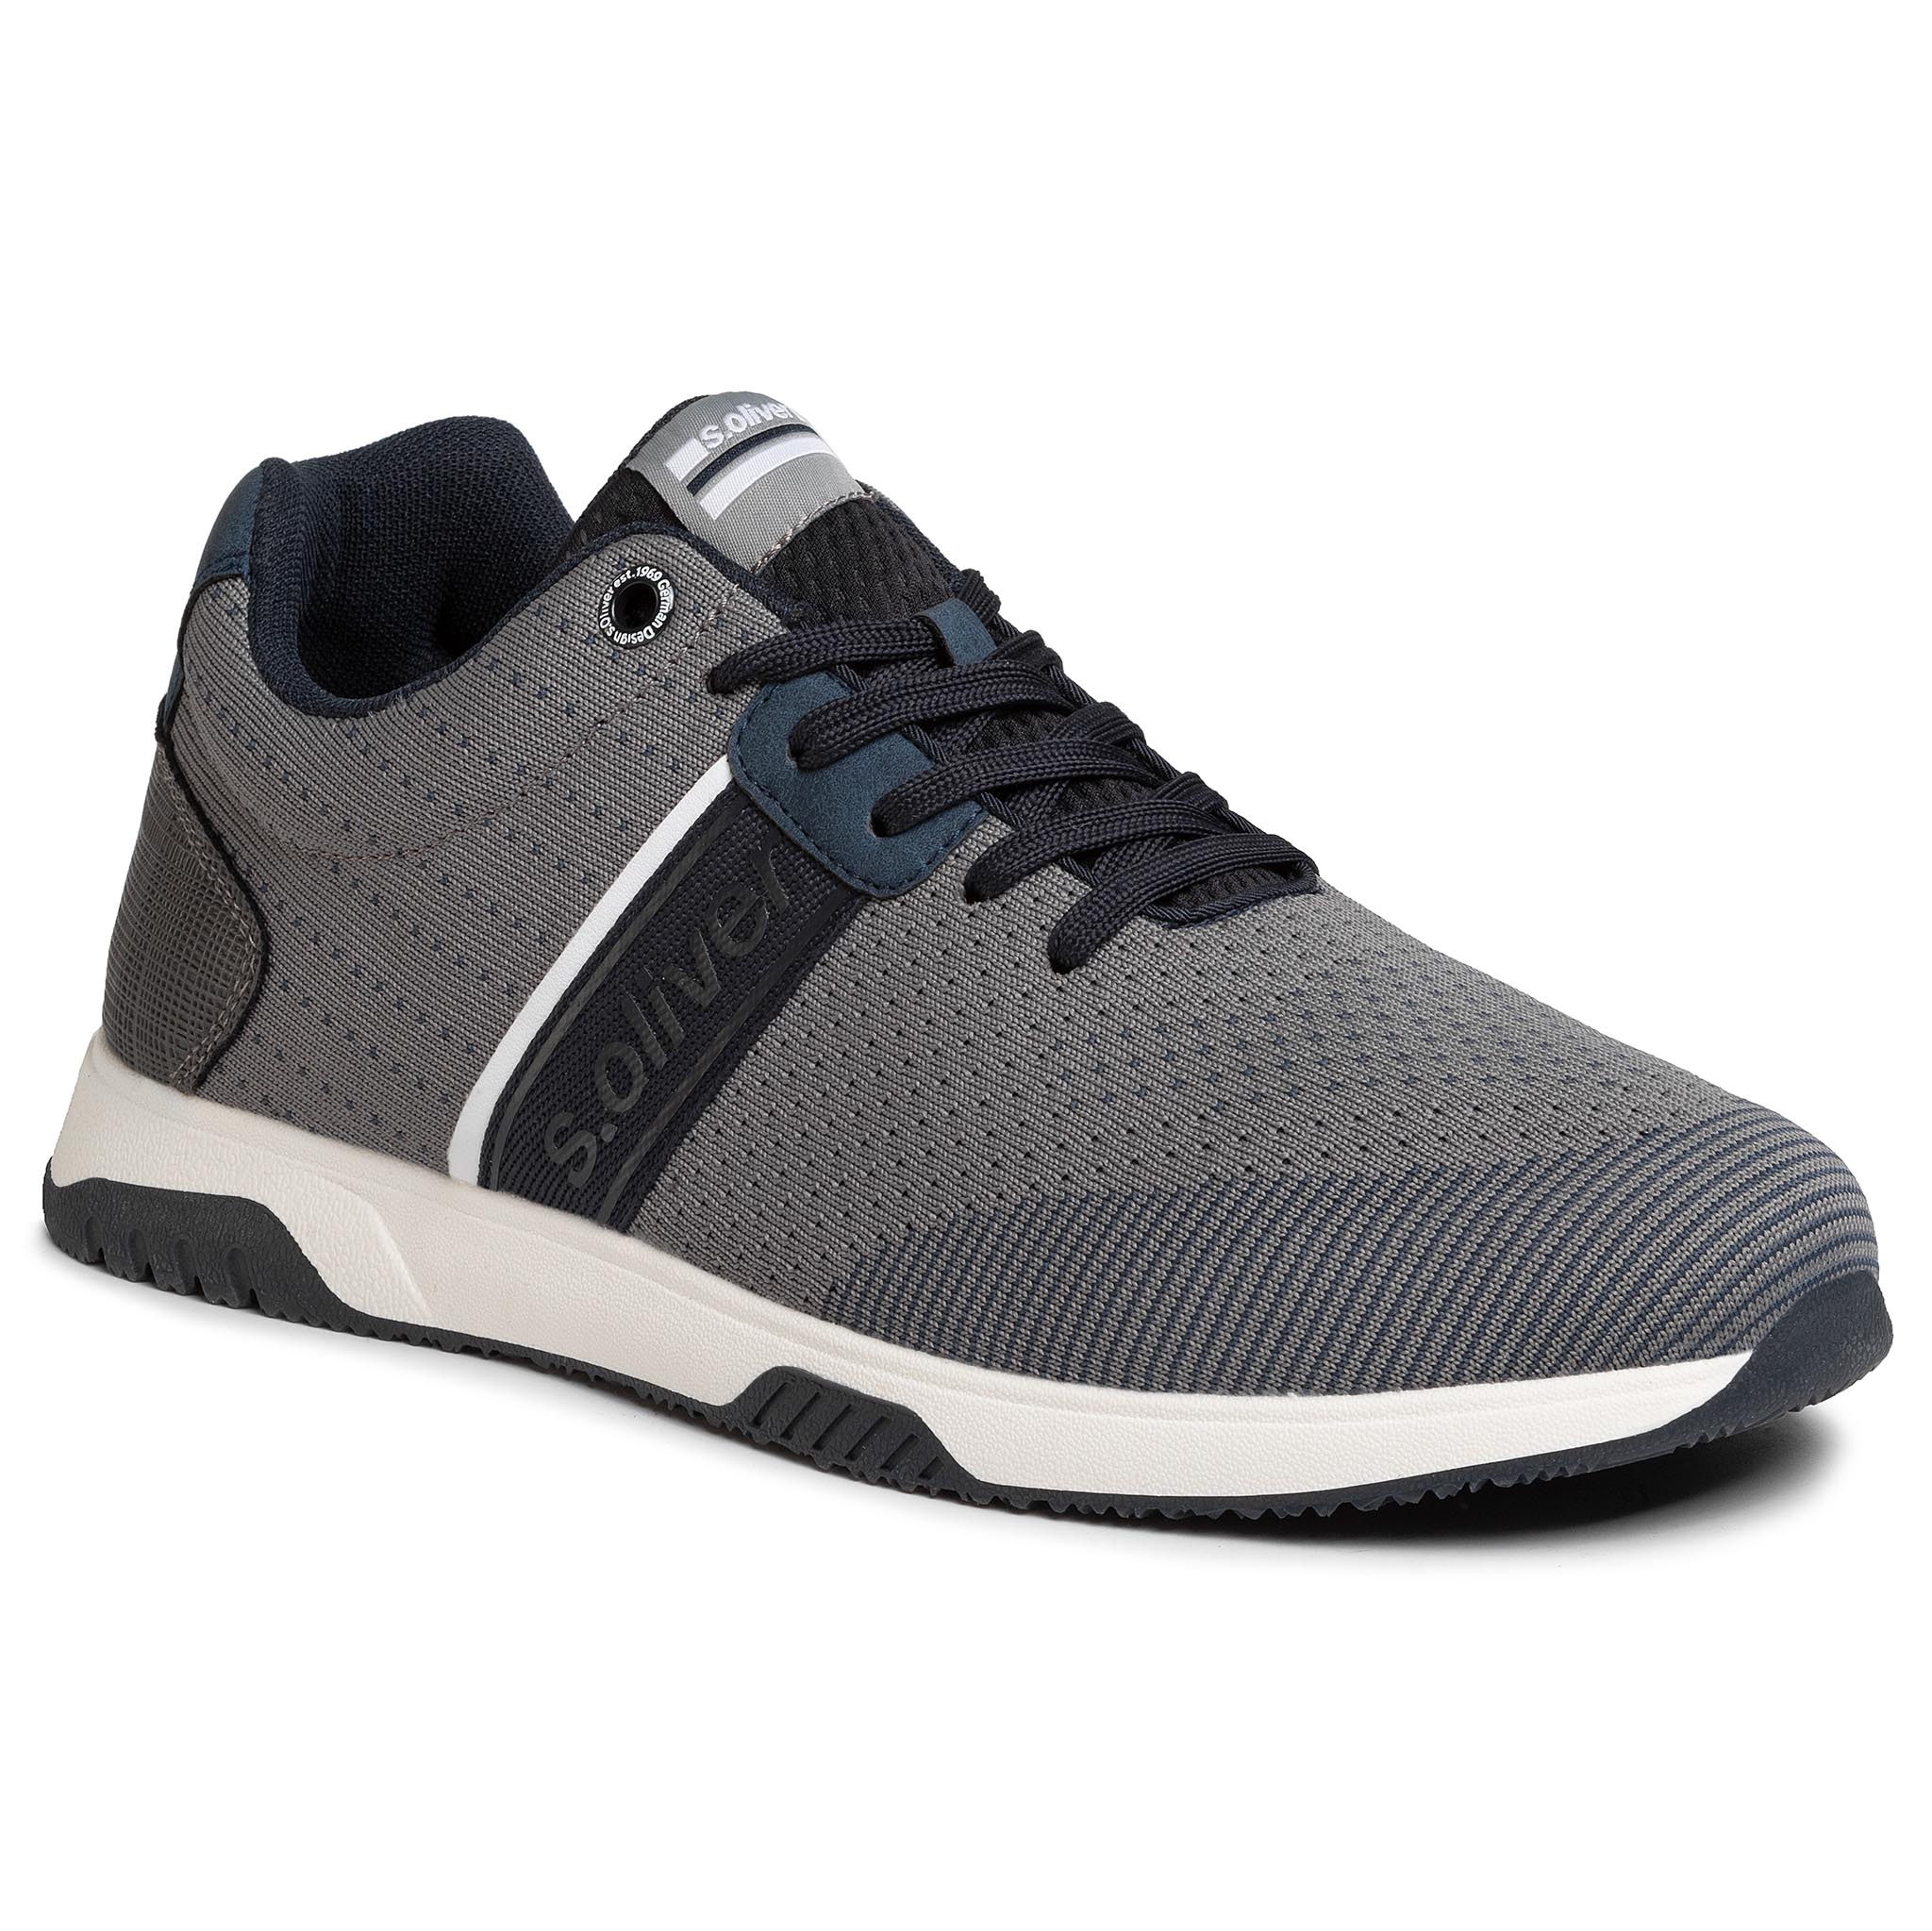 Sneakers S.OLIVER - 5-13613-24 Grey 200 imagine